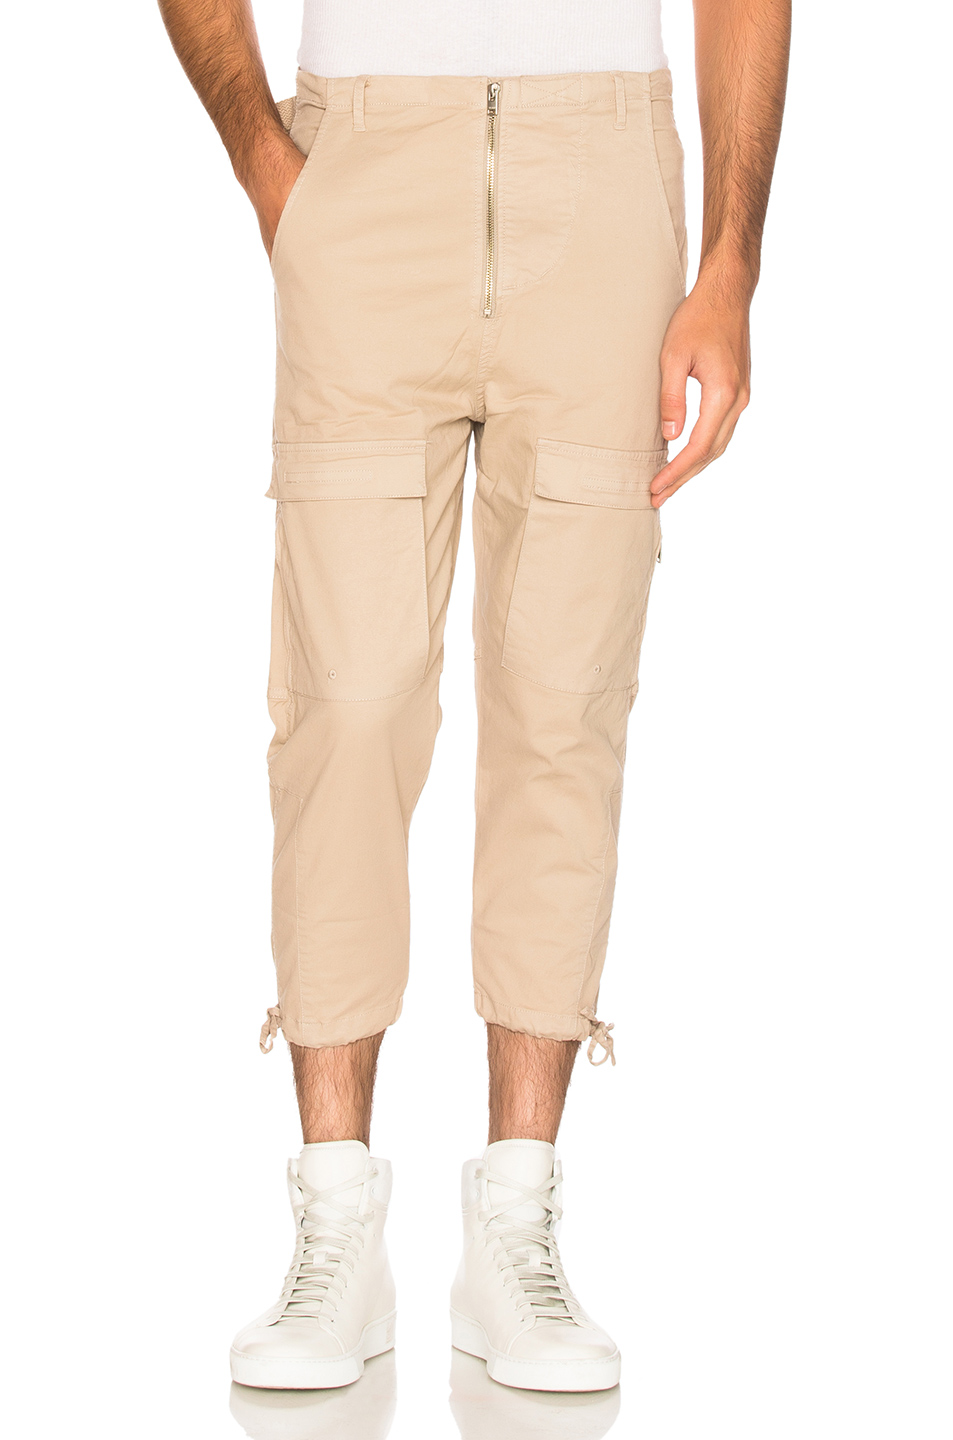 Stampd Deck Pants in Neutrals